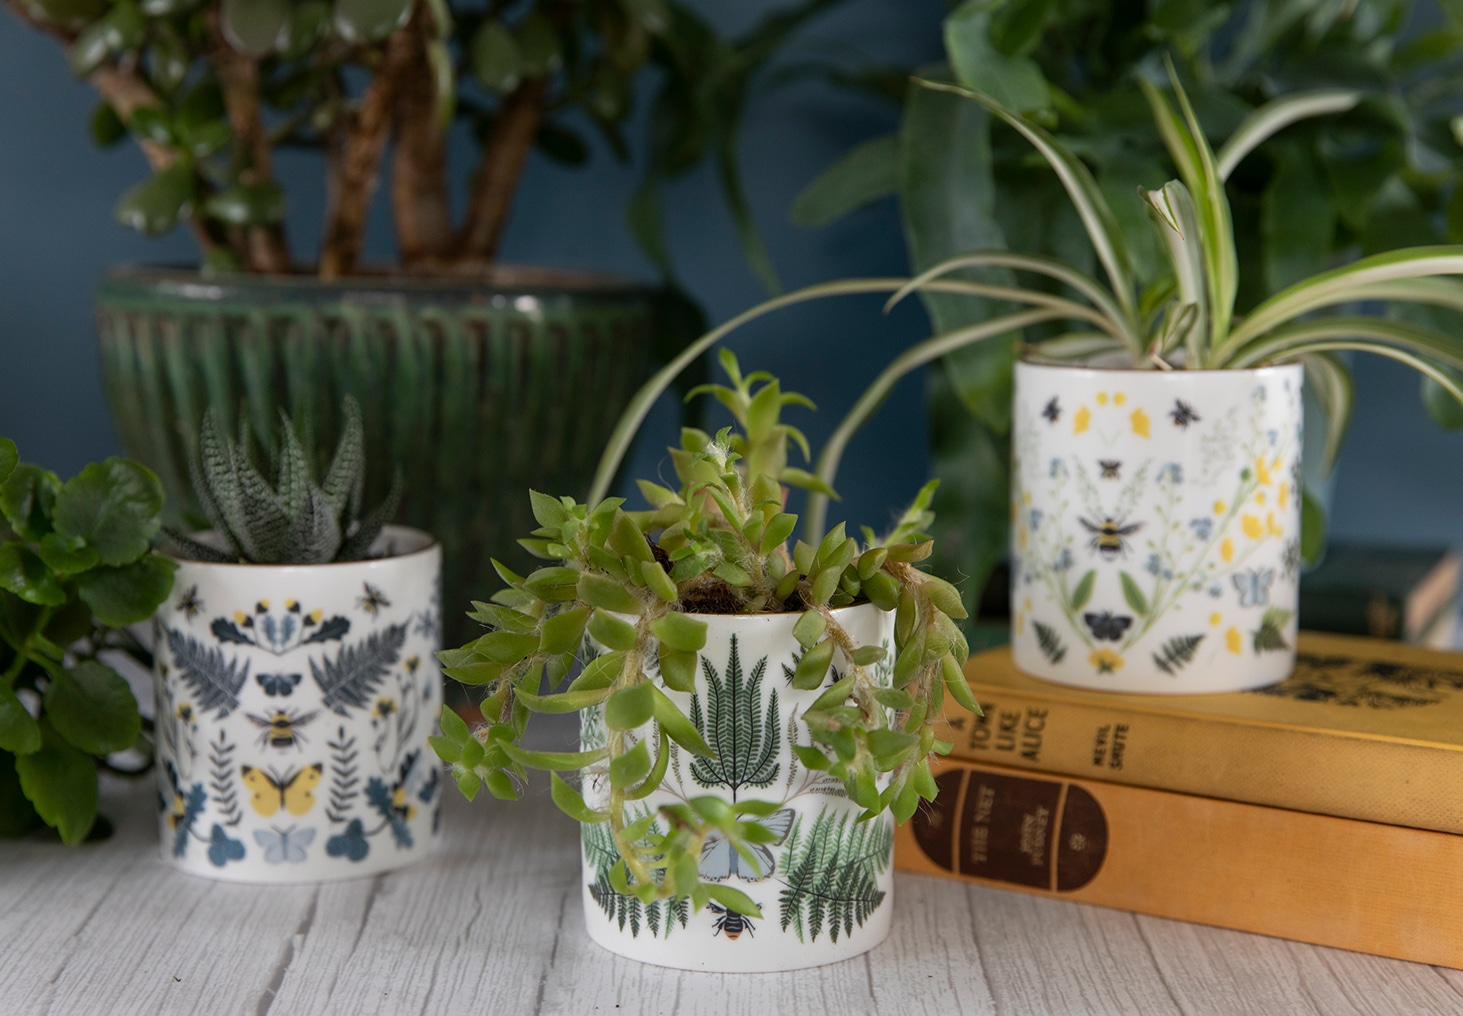 Luxury Ceramic Scented Candle Gifts Handmade UK Luxury Candles Reusable British Wilflowers English Yellow Bee Buttercup Designer Floral Butterfly Flowers Vegan Coconut Wax Plants